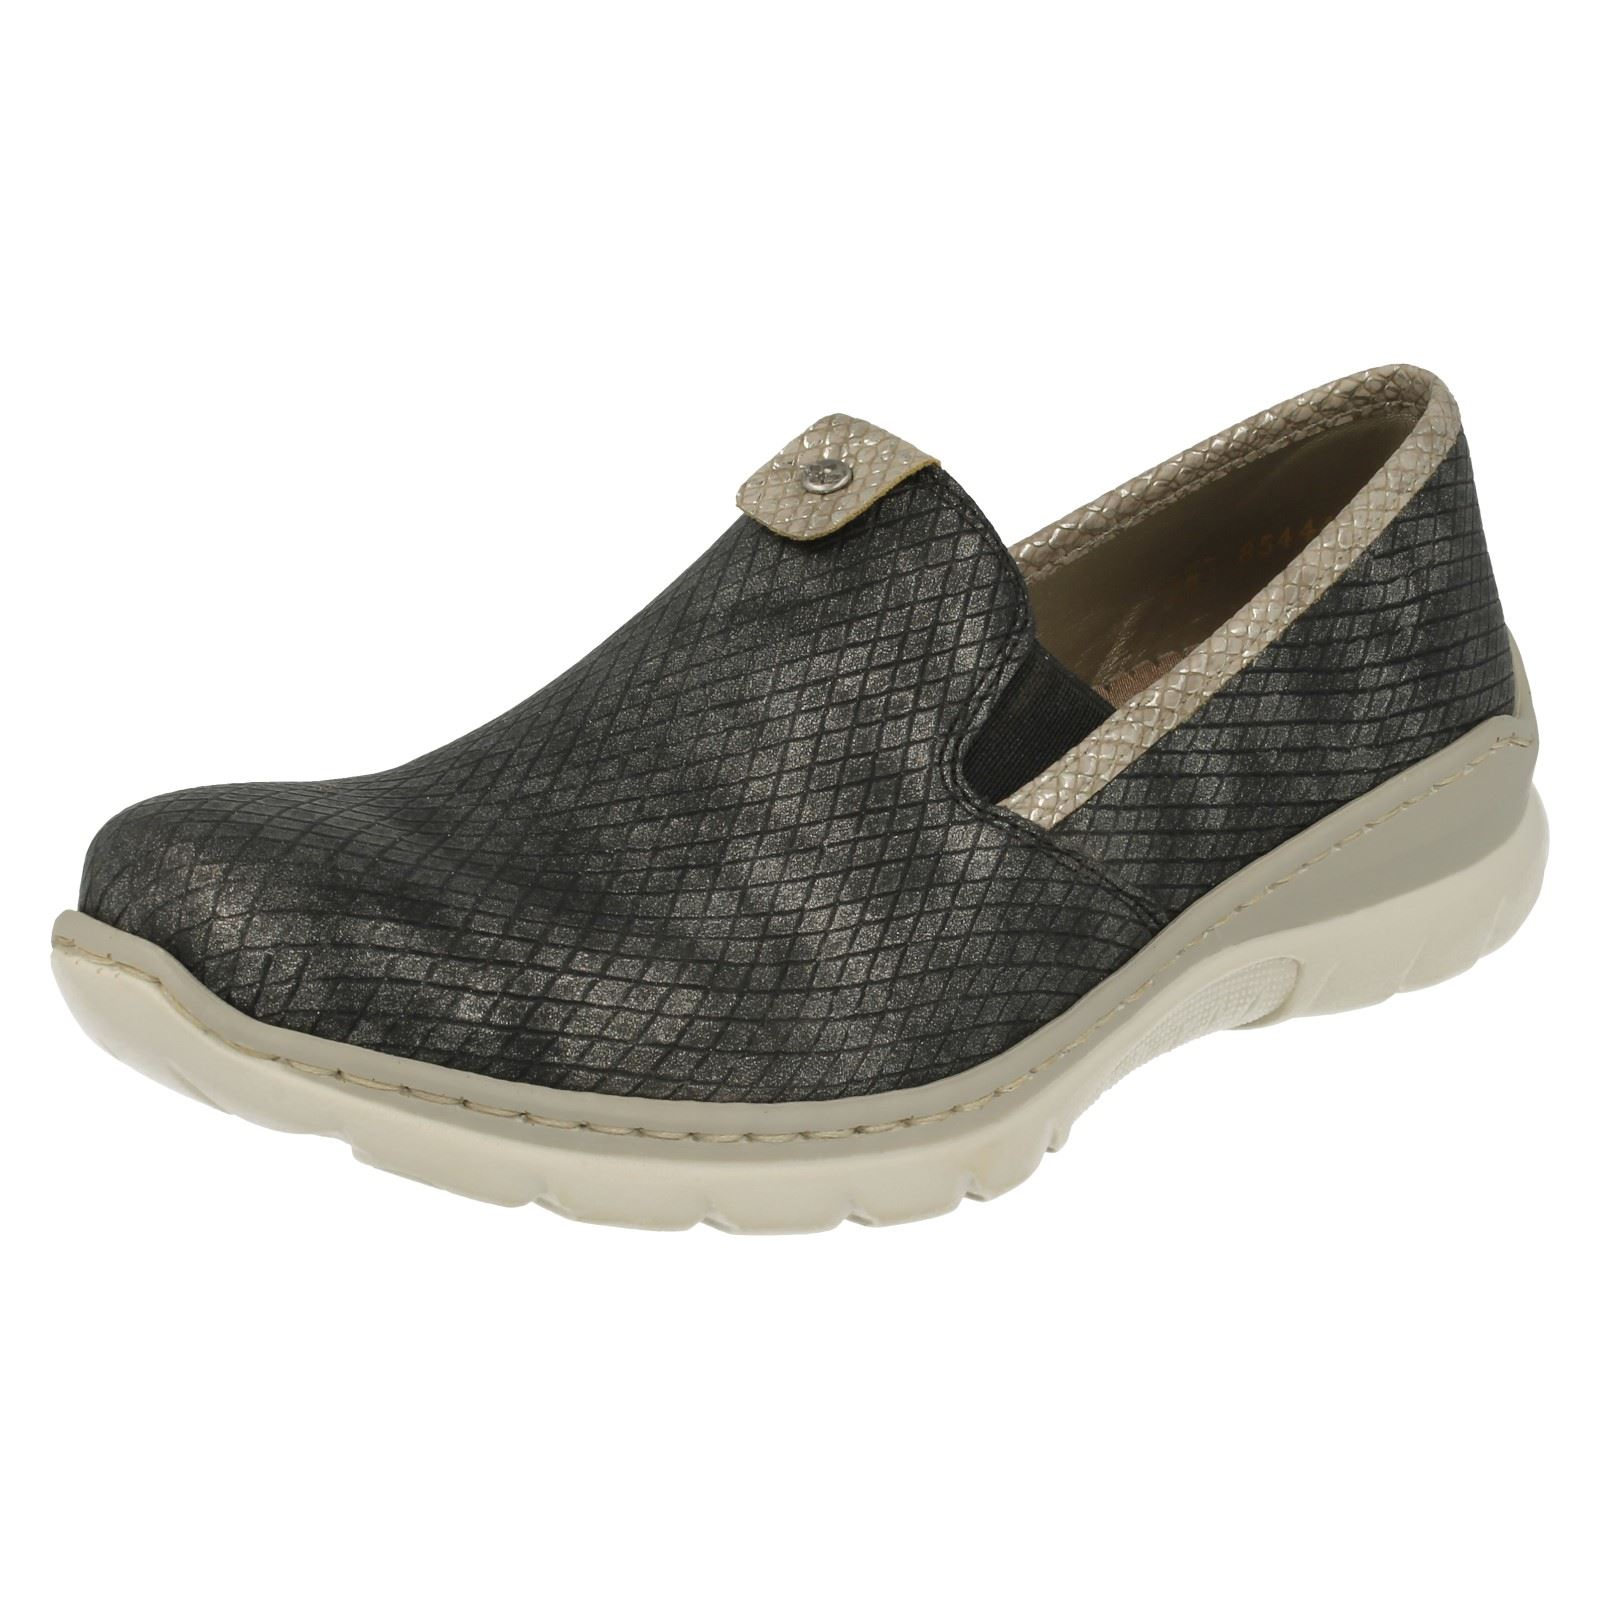 Combi scarpe L3272 Grey Ladies Rieker Slip Casual On fxw4vOq